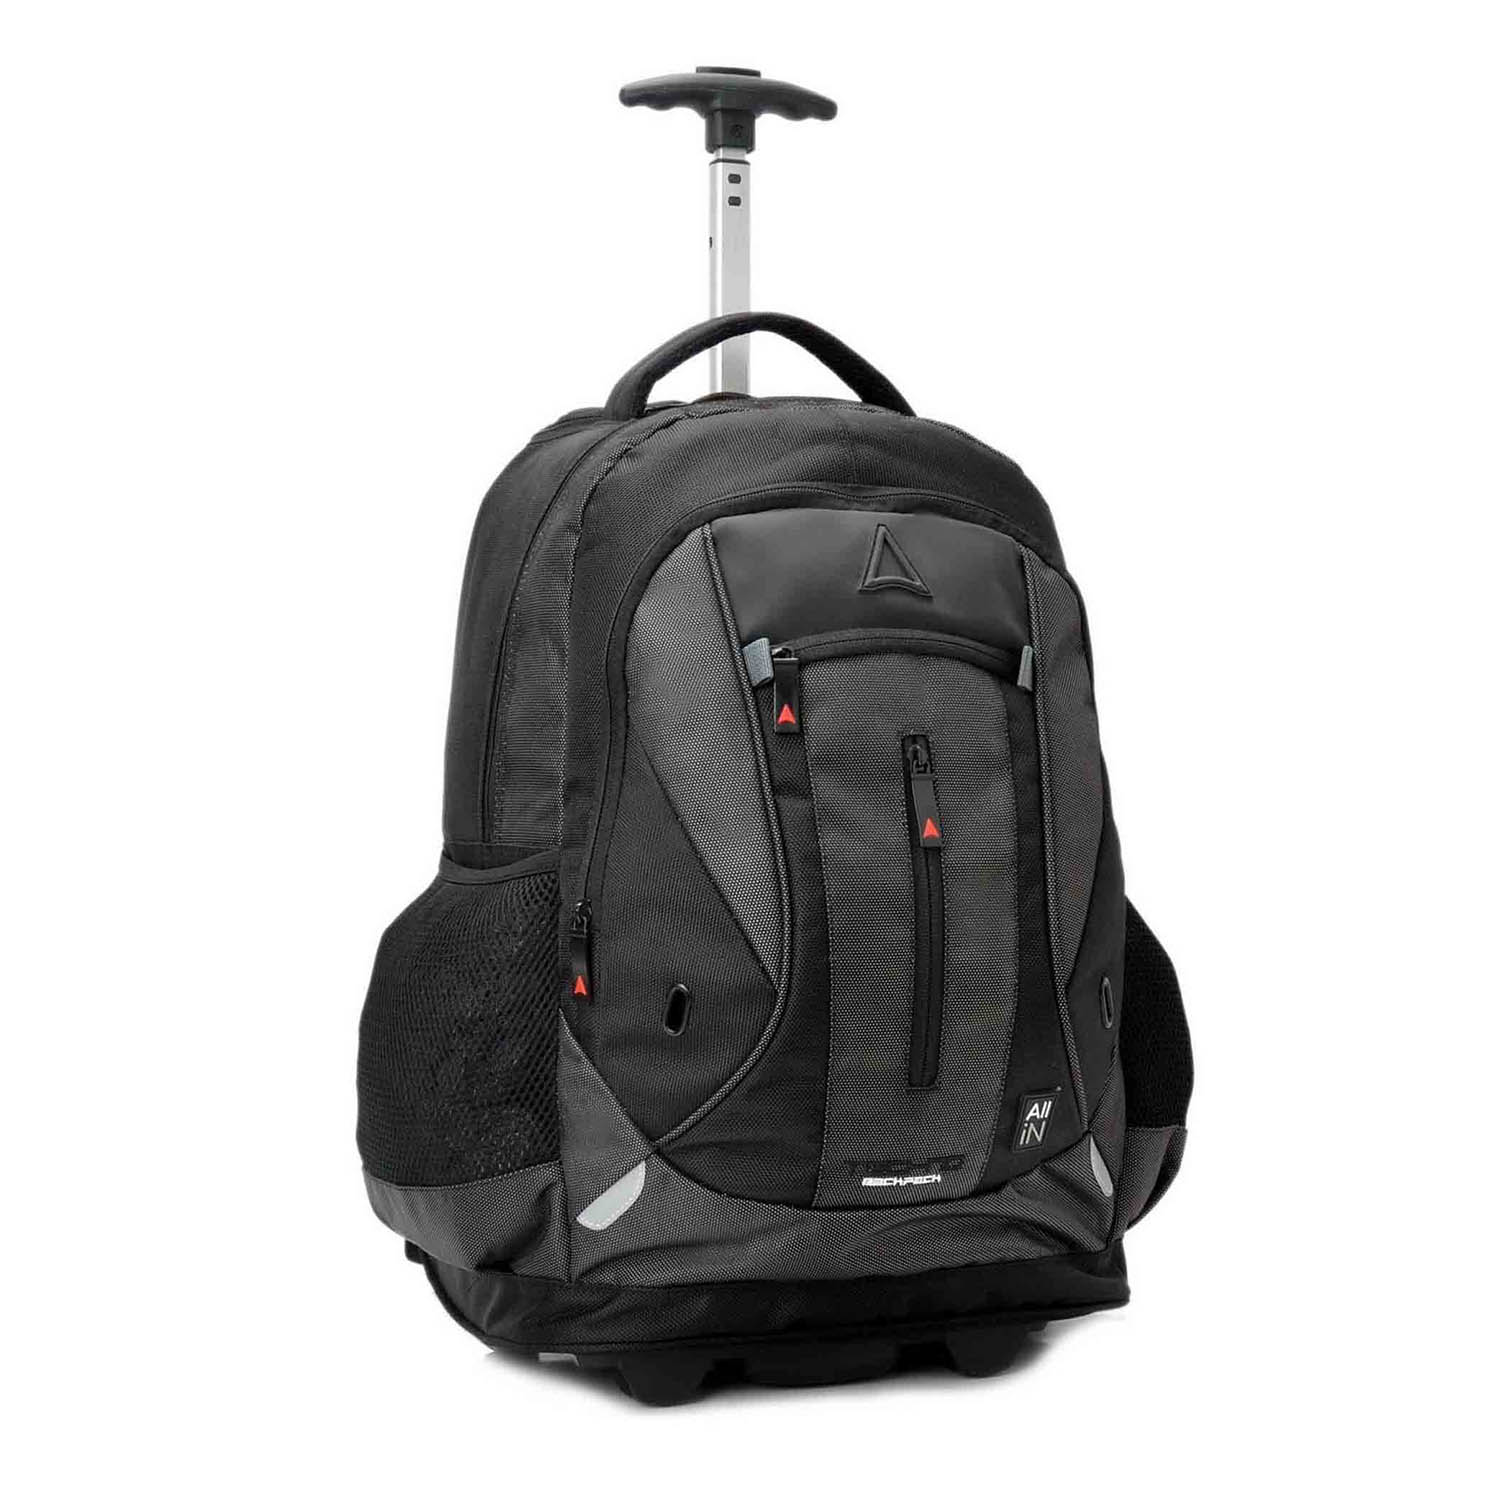 MOCHILA NOTEBOOK SPORT COM RODAS - SEANITE